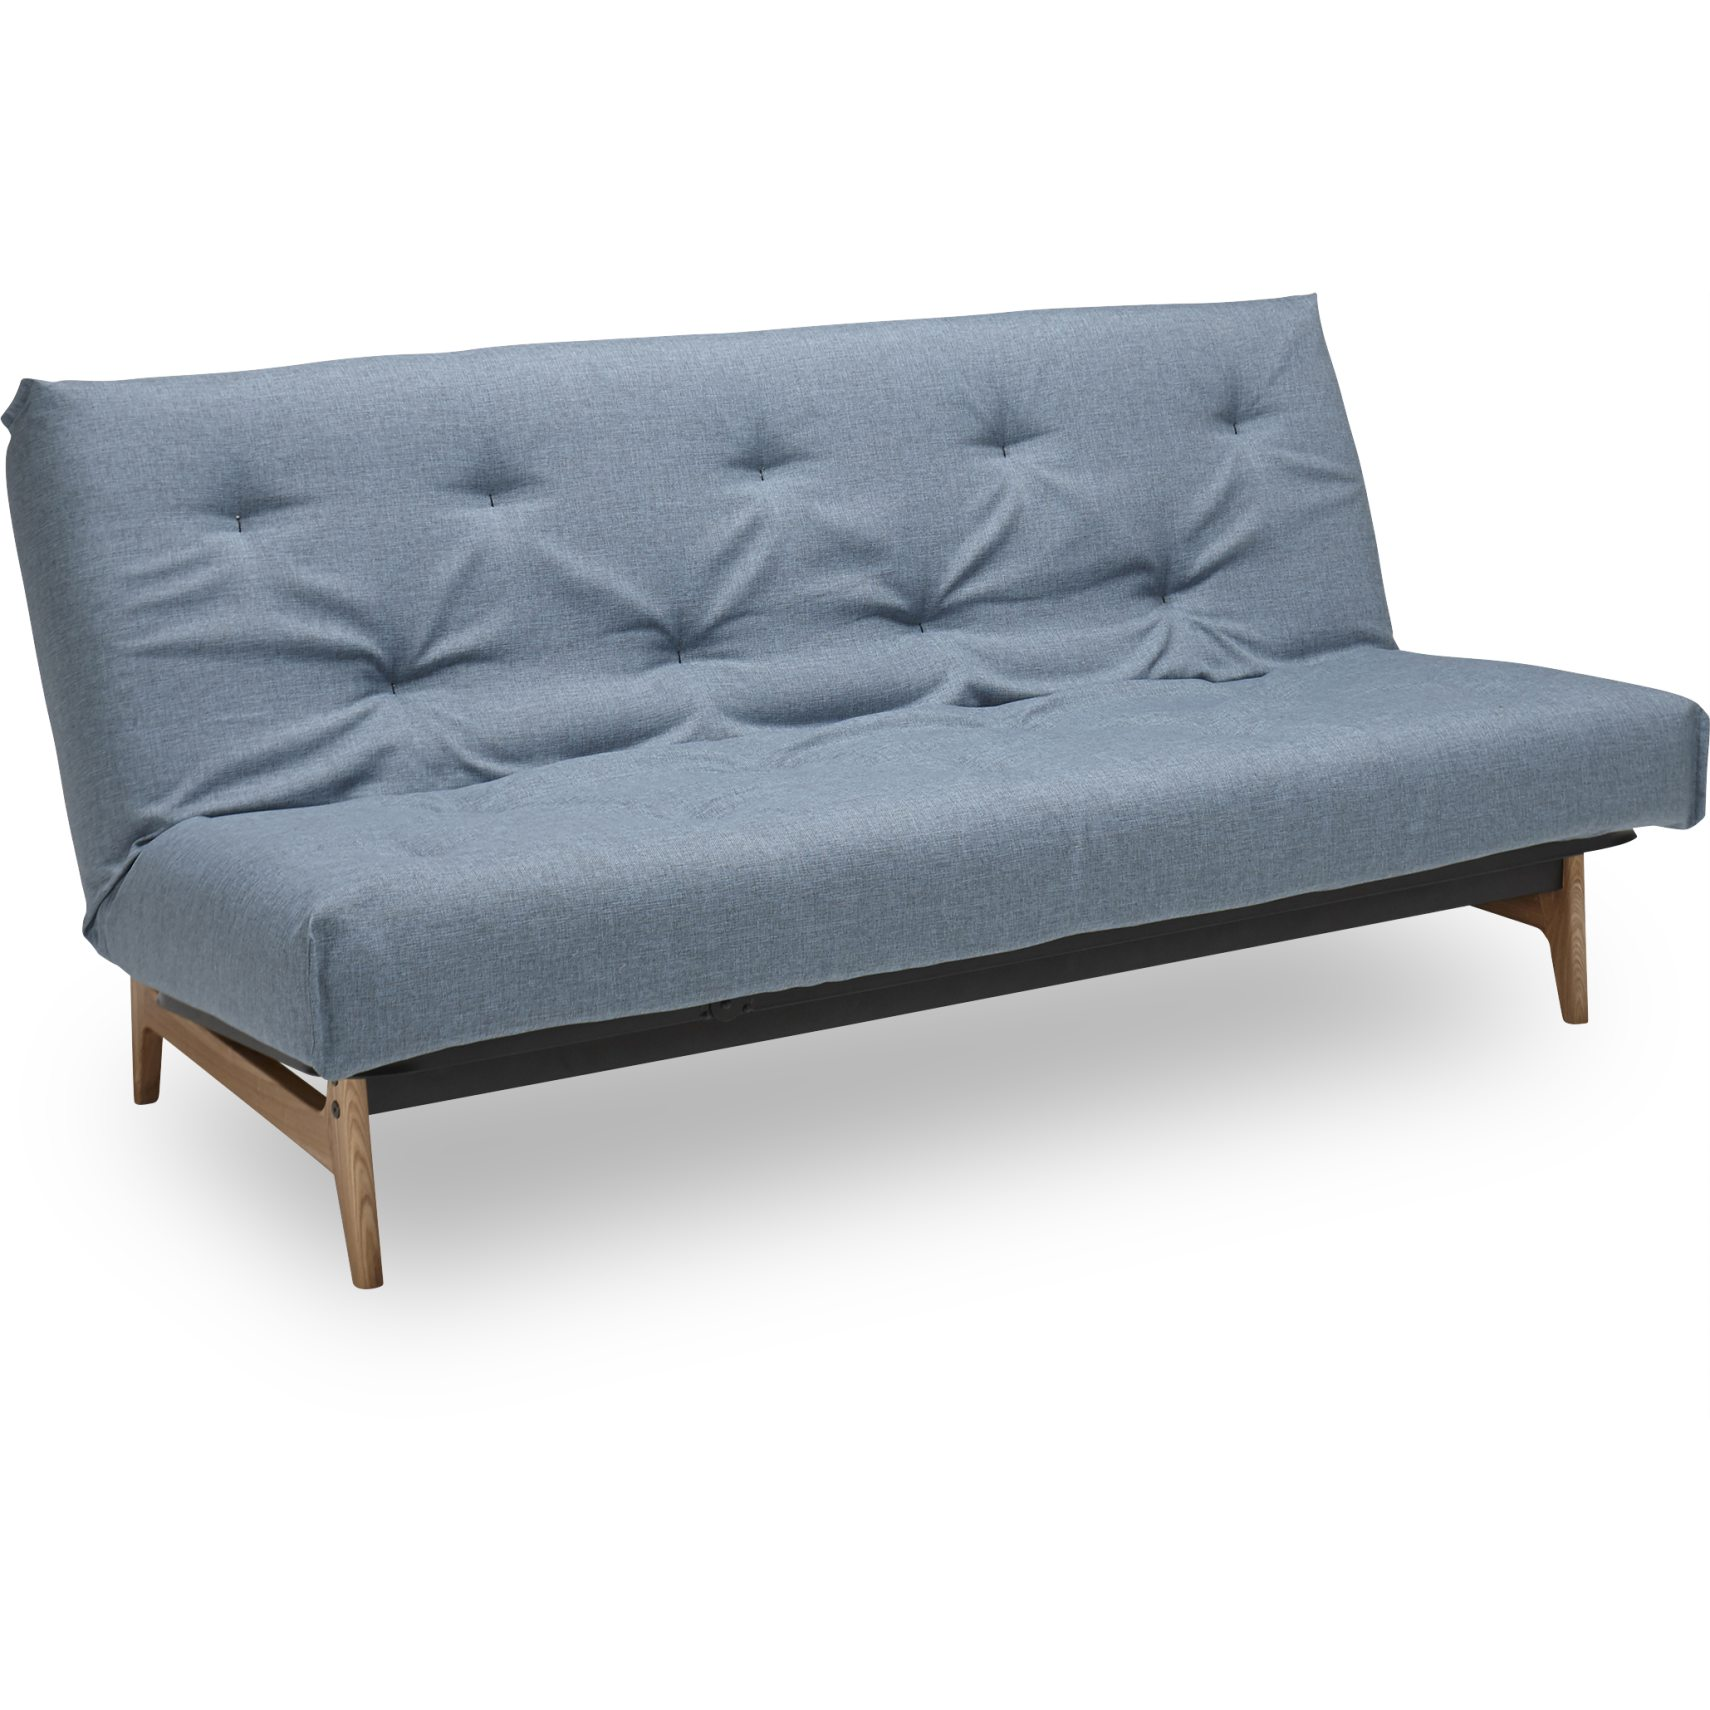 Innovation Living - Aslak Soft Spring Sovesofa - Sovesofa